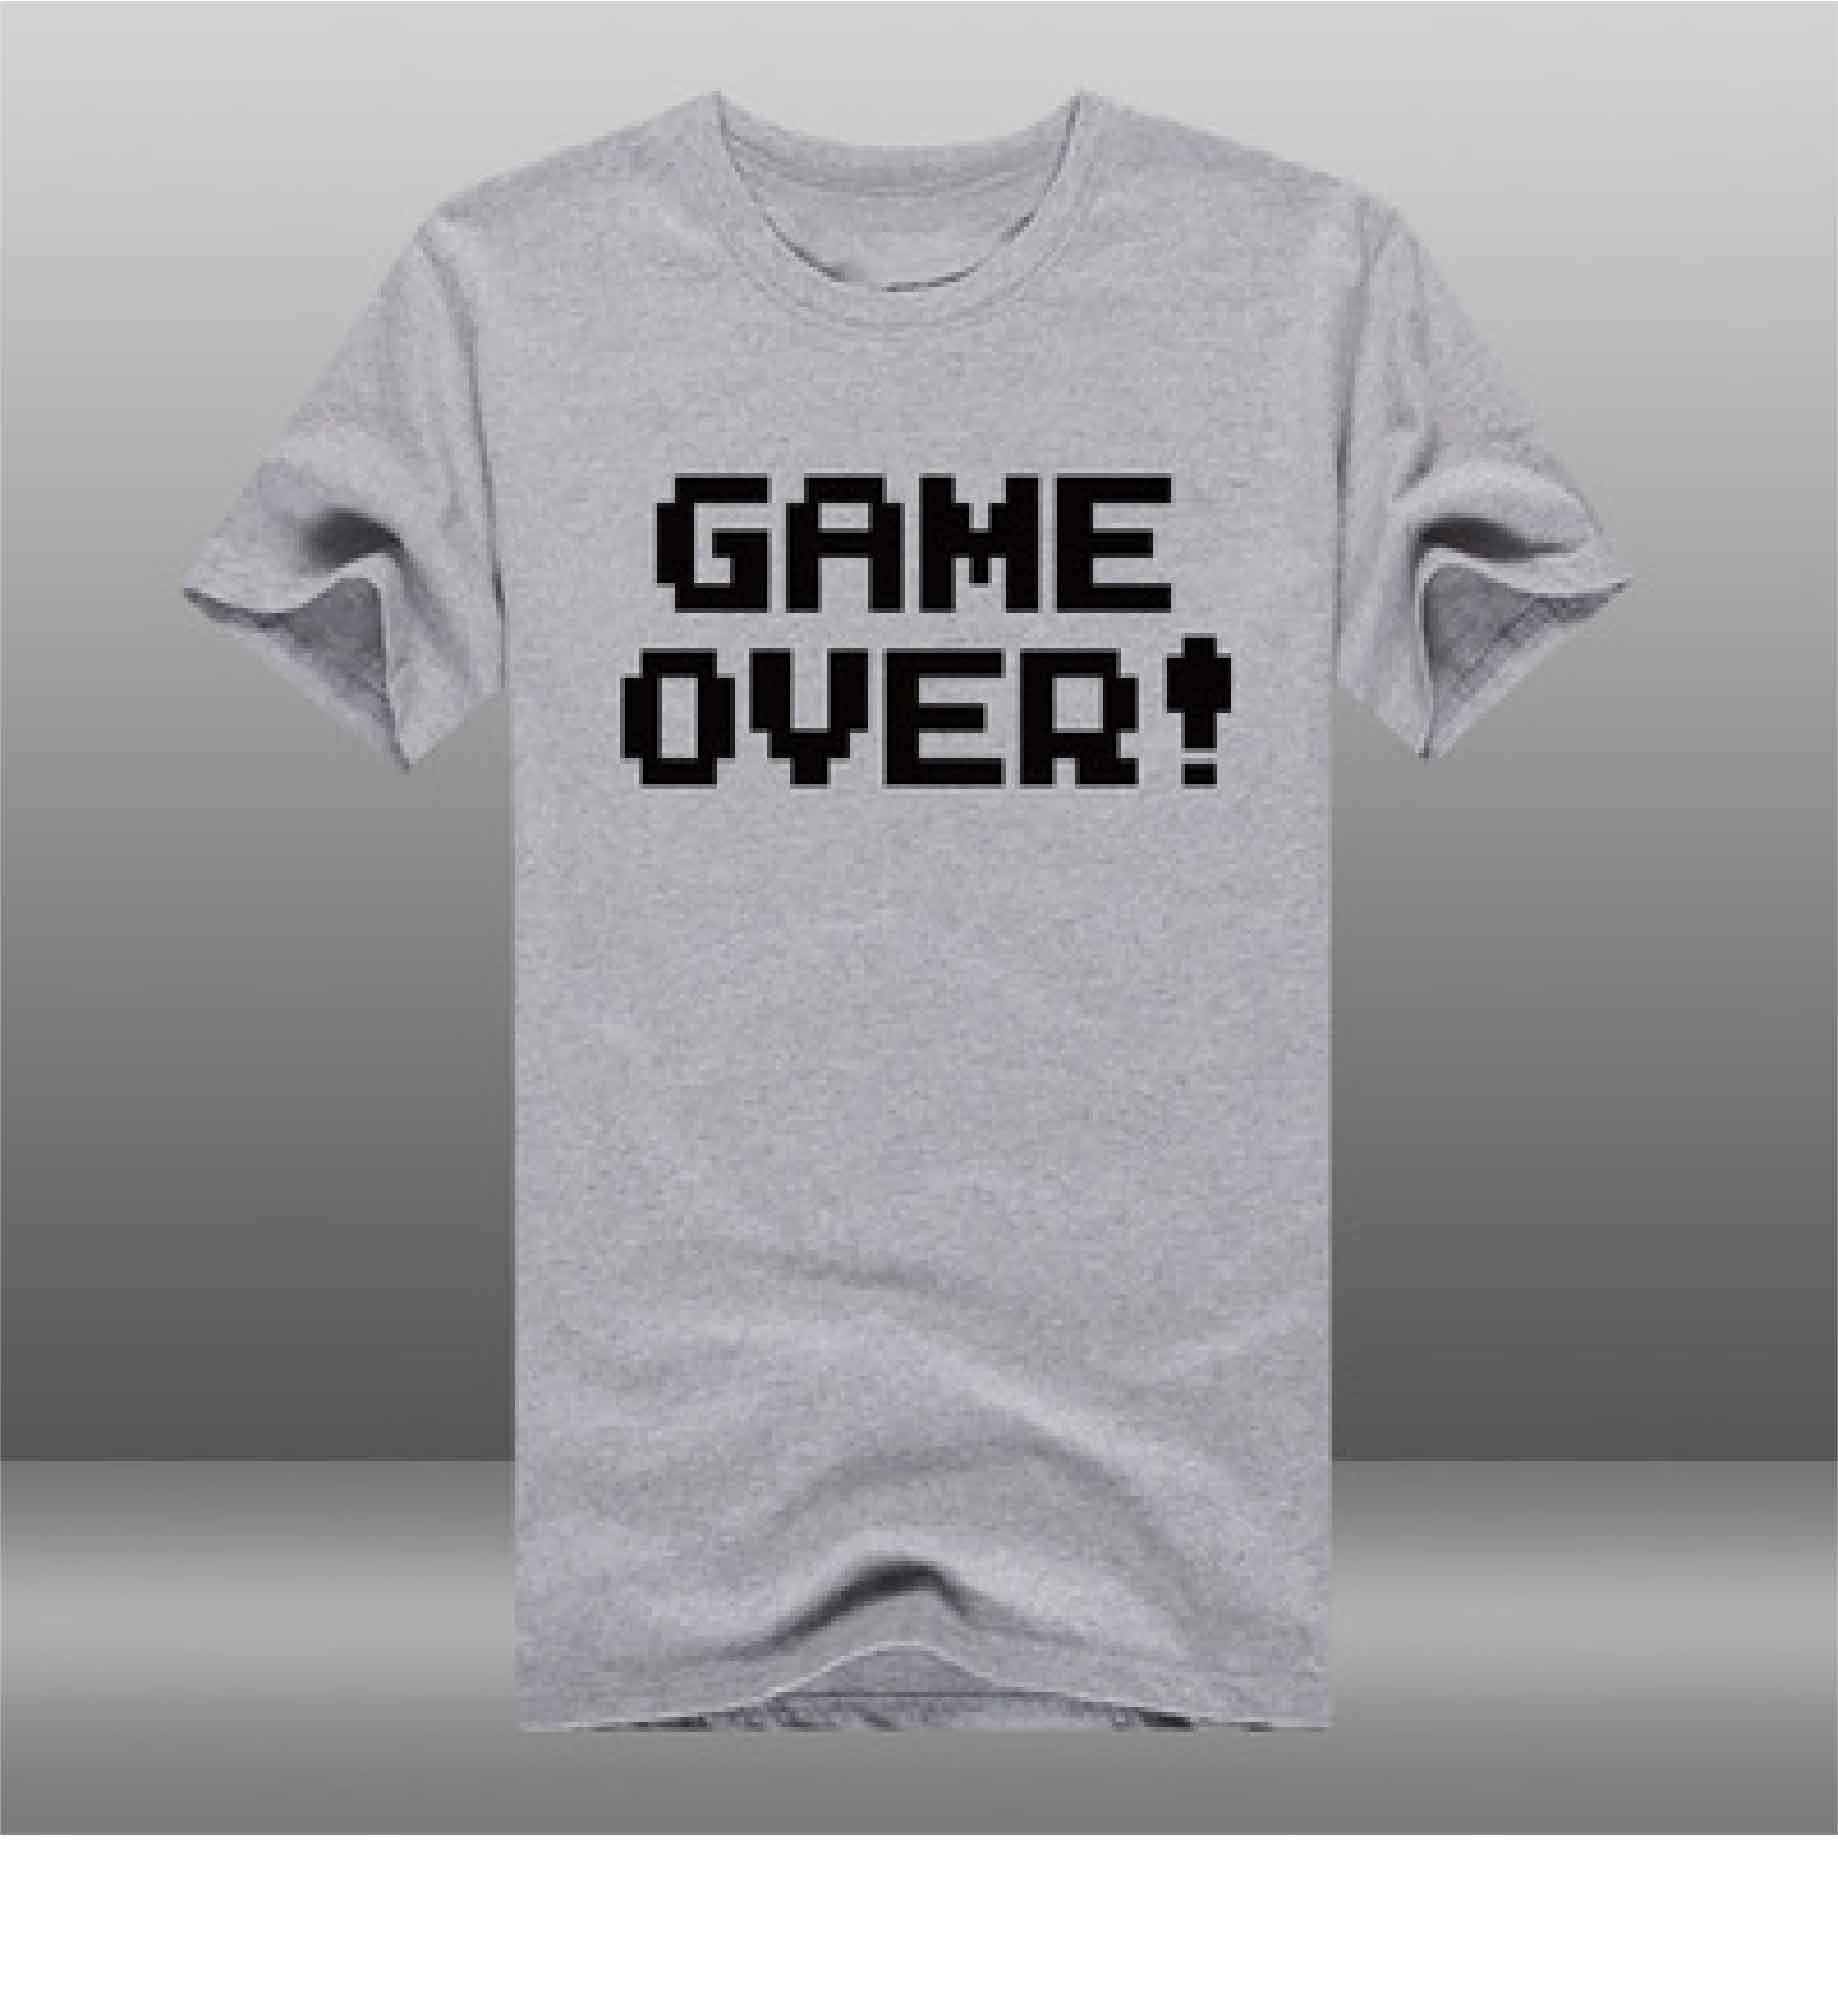 T-Shirt Game Over Pixel Retropixl Retrogaming retro gaming Rare Console Collector Limited Edition Japan Import